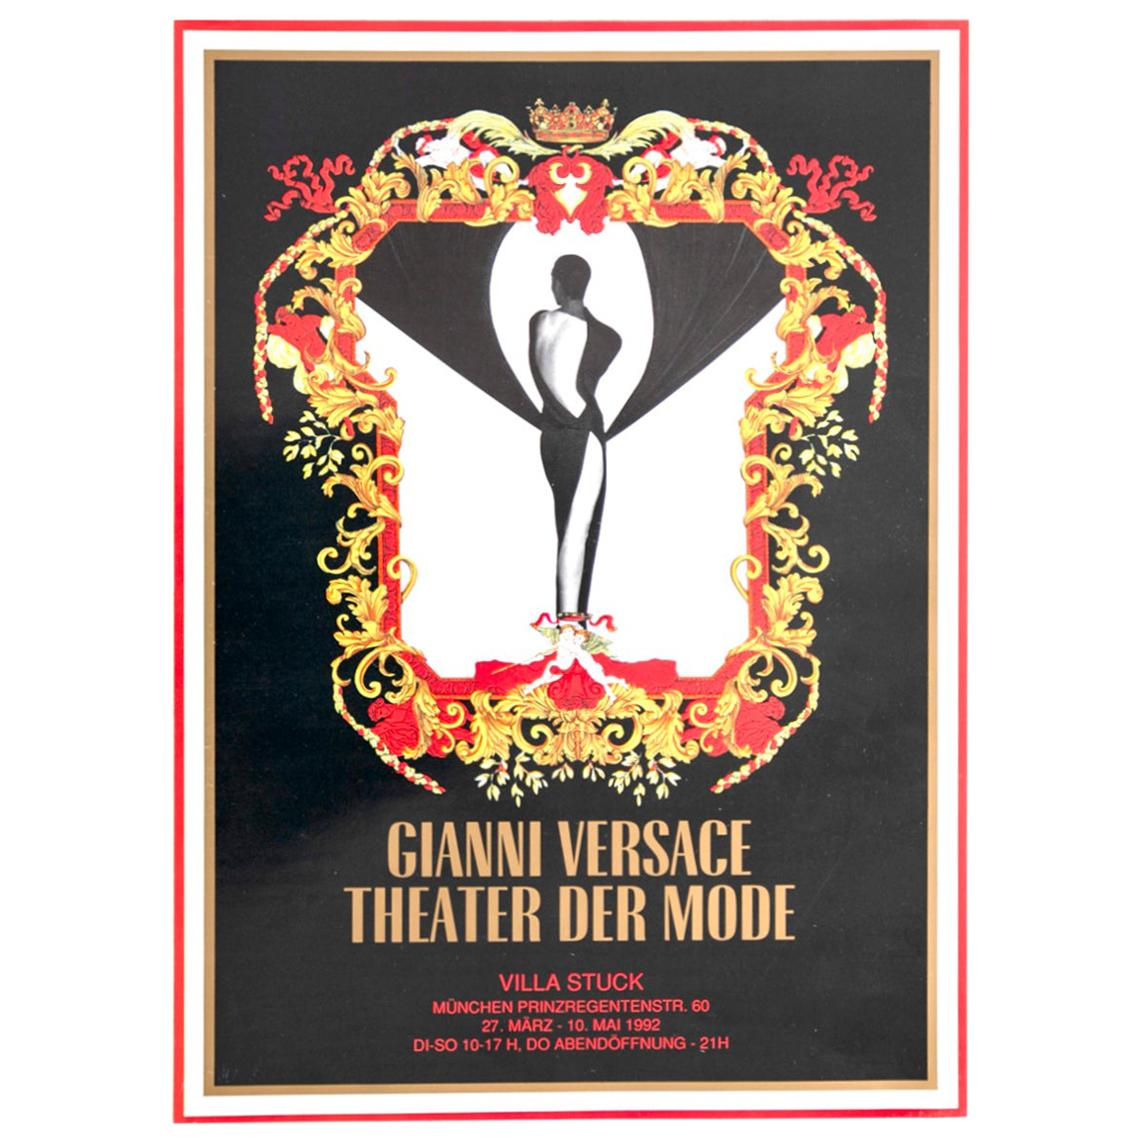 """Poster Gianni Versace for """"Theater der Mode"""" for Villa Stuck, 1992"""